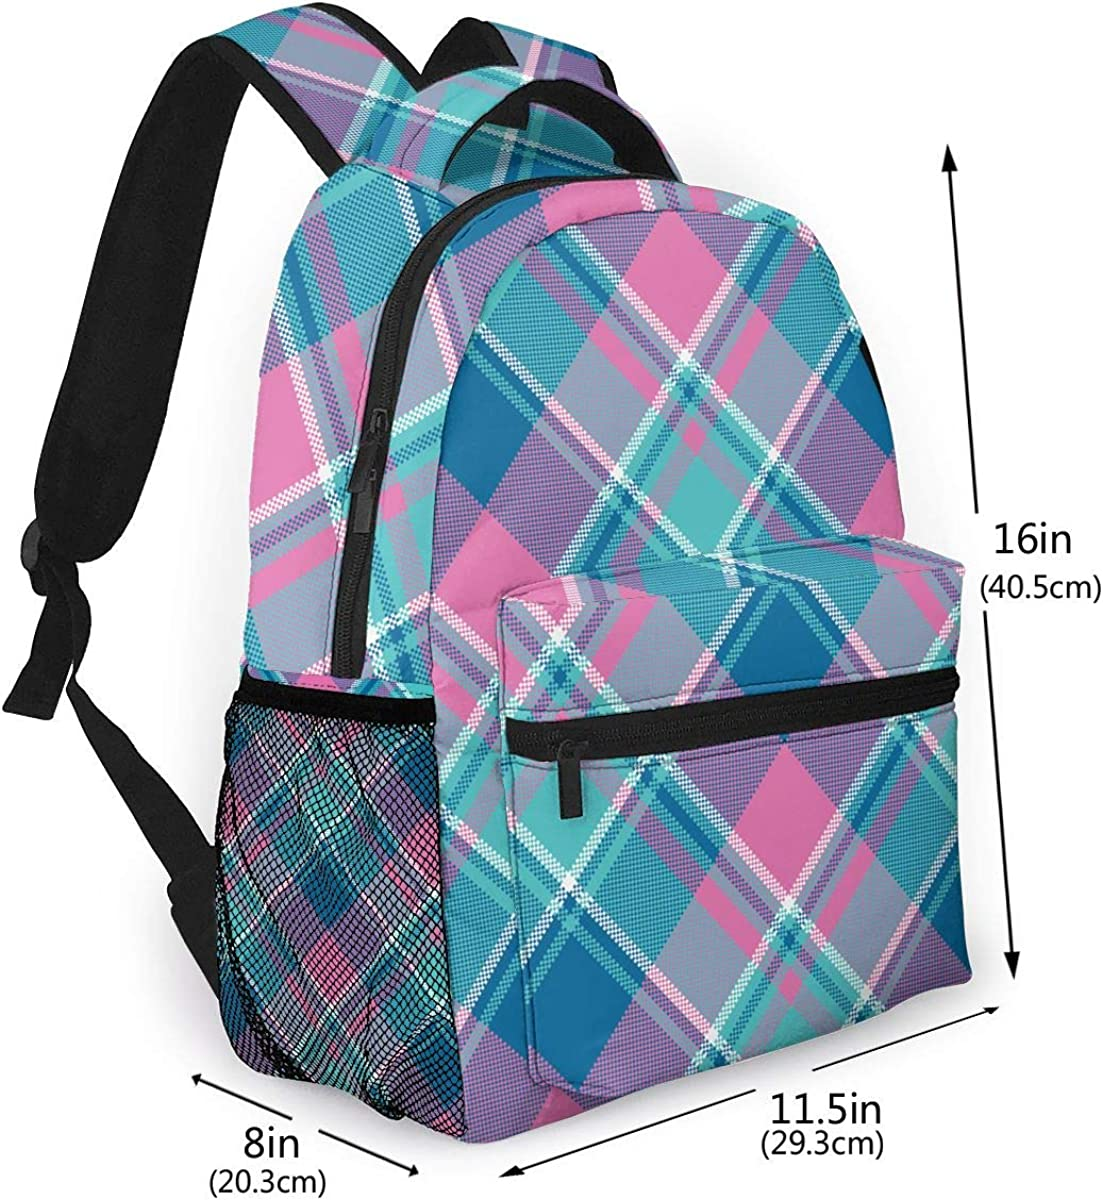 Pink Pastel Color Plaid Fashion Outdoor Shoulders Bag Durable Travel Camping Backpack For Adult